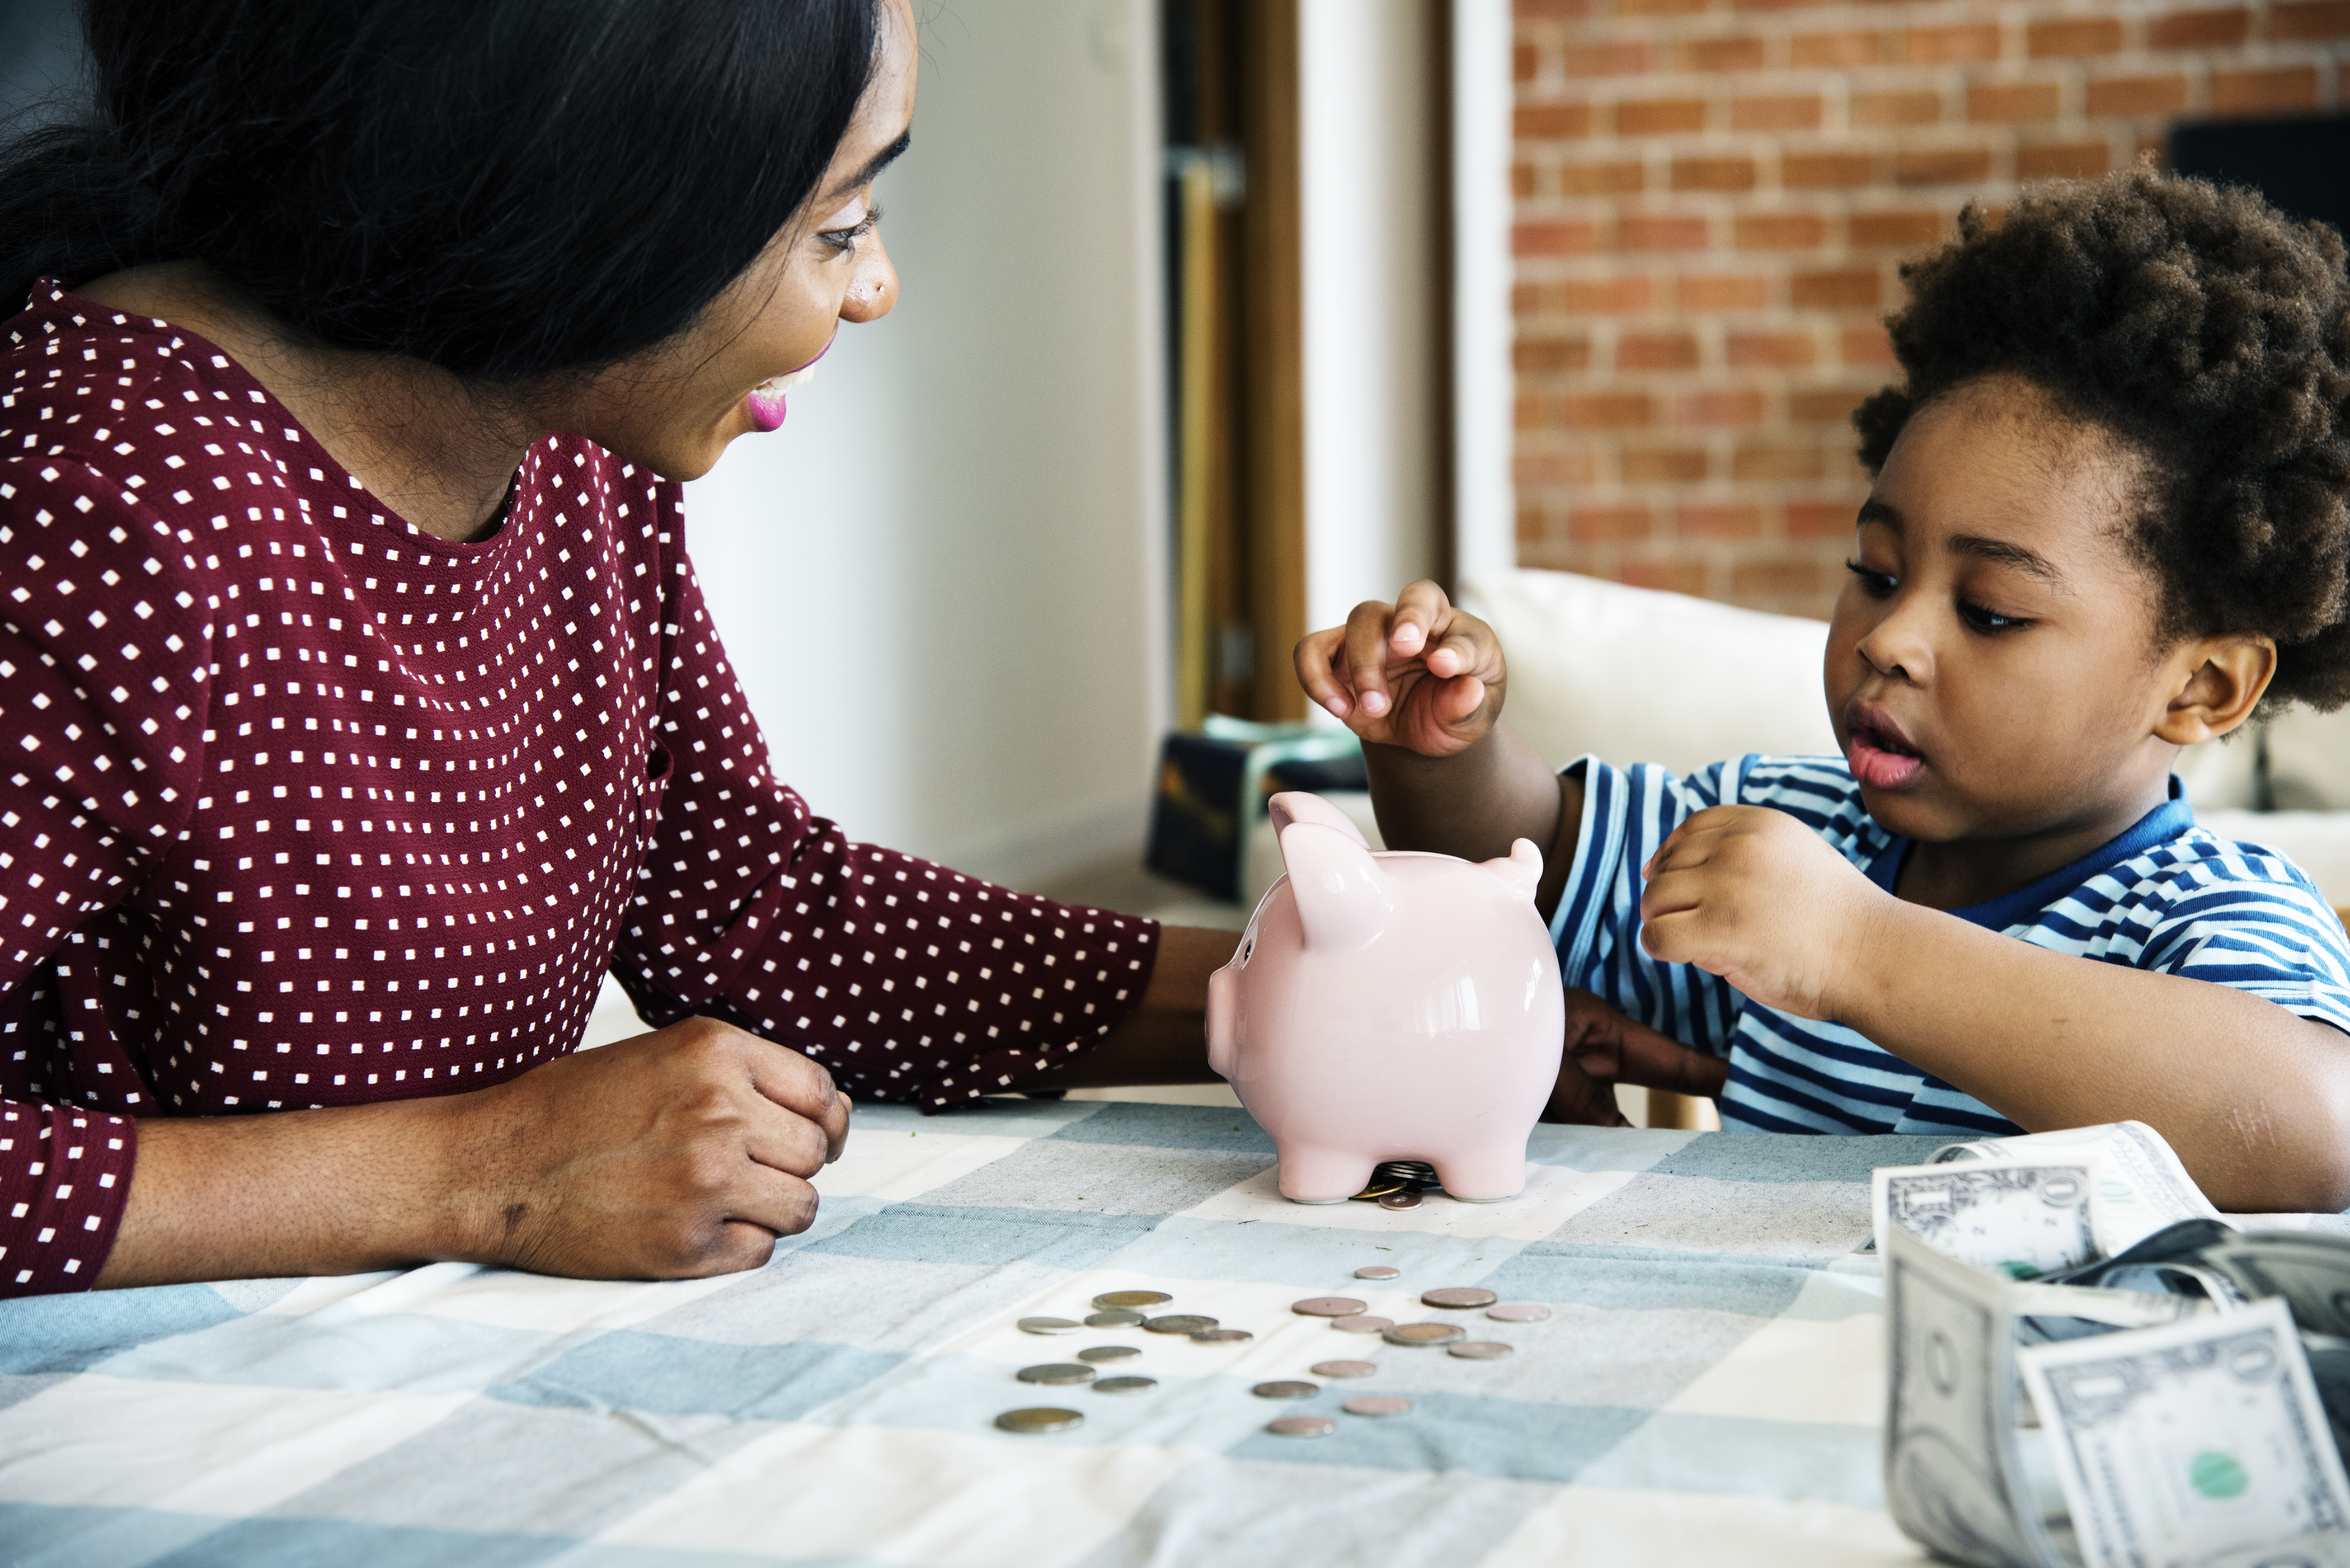 a mother and her son placing coins in a piggy bank